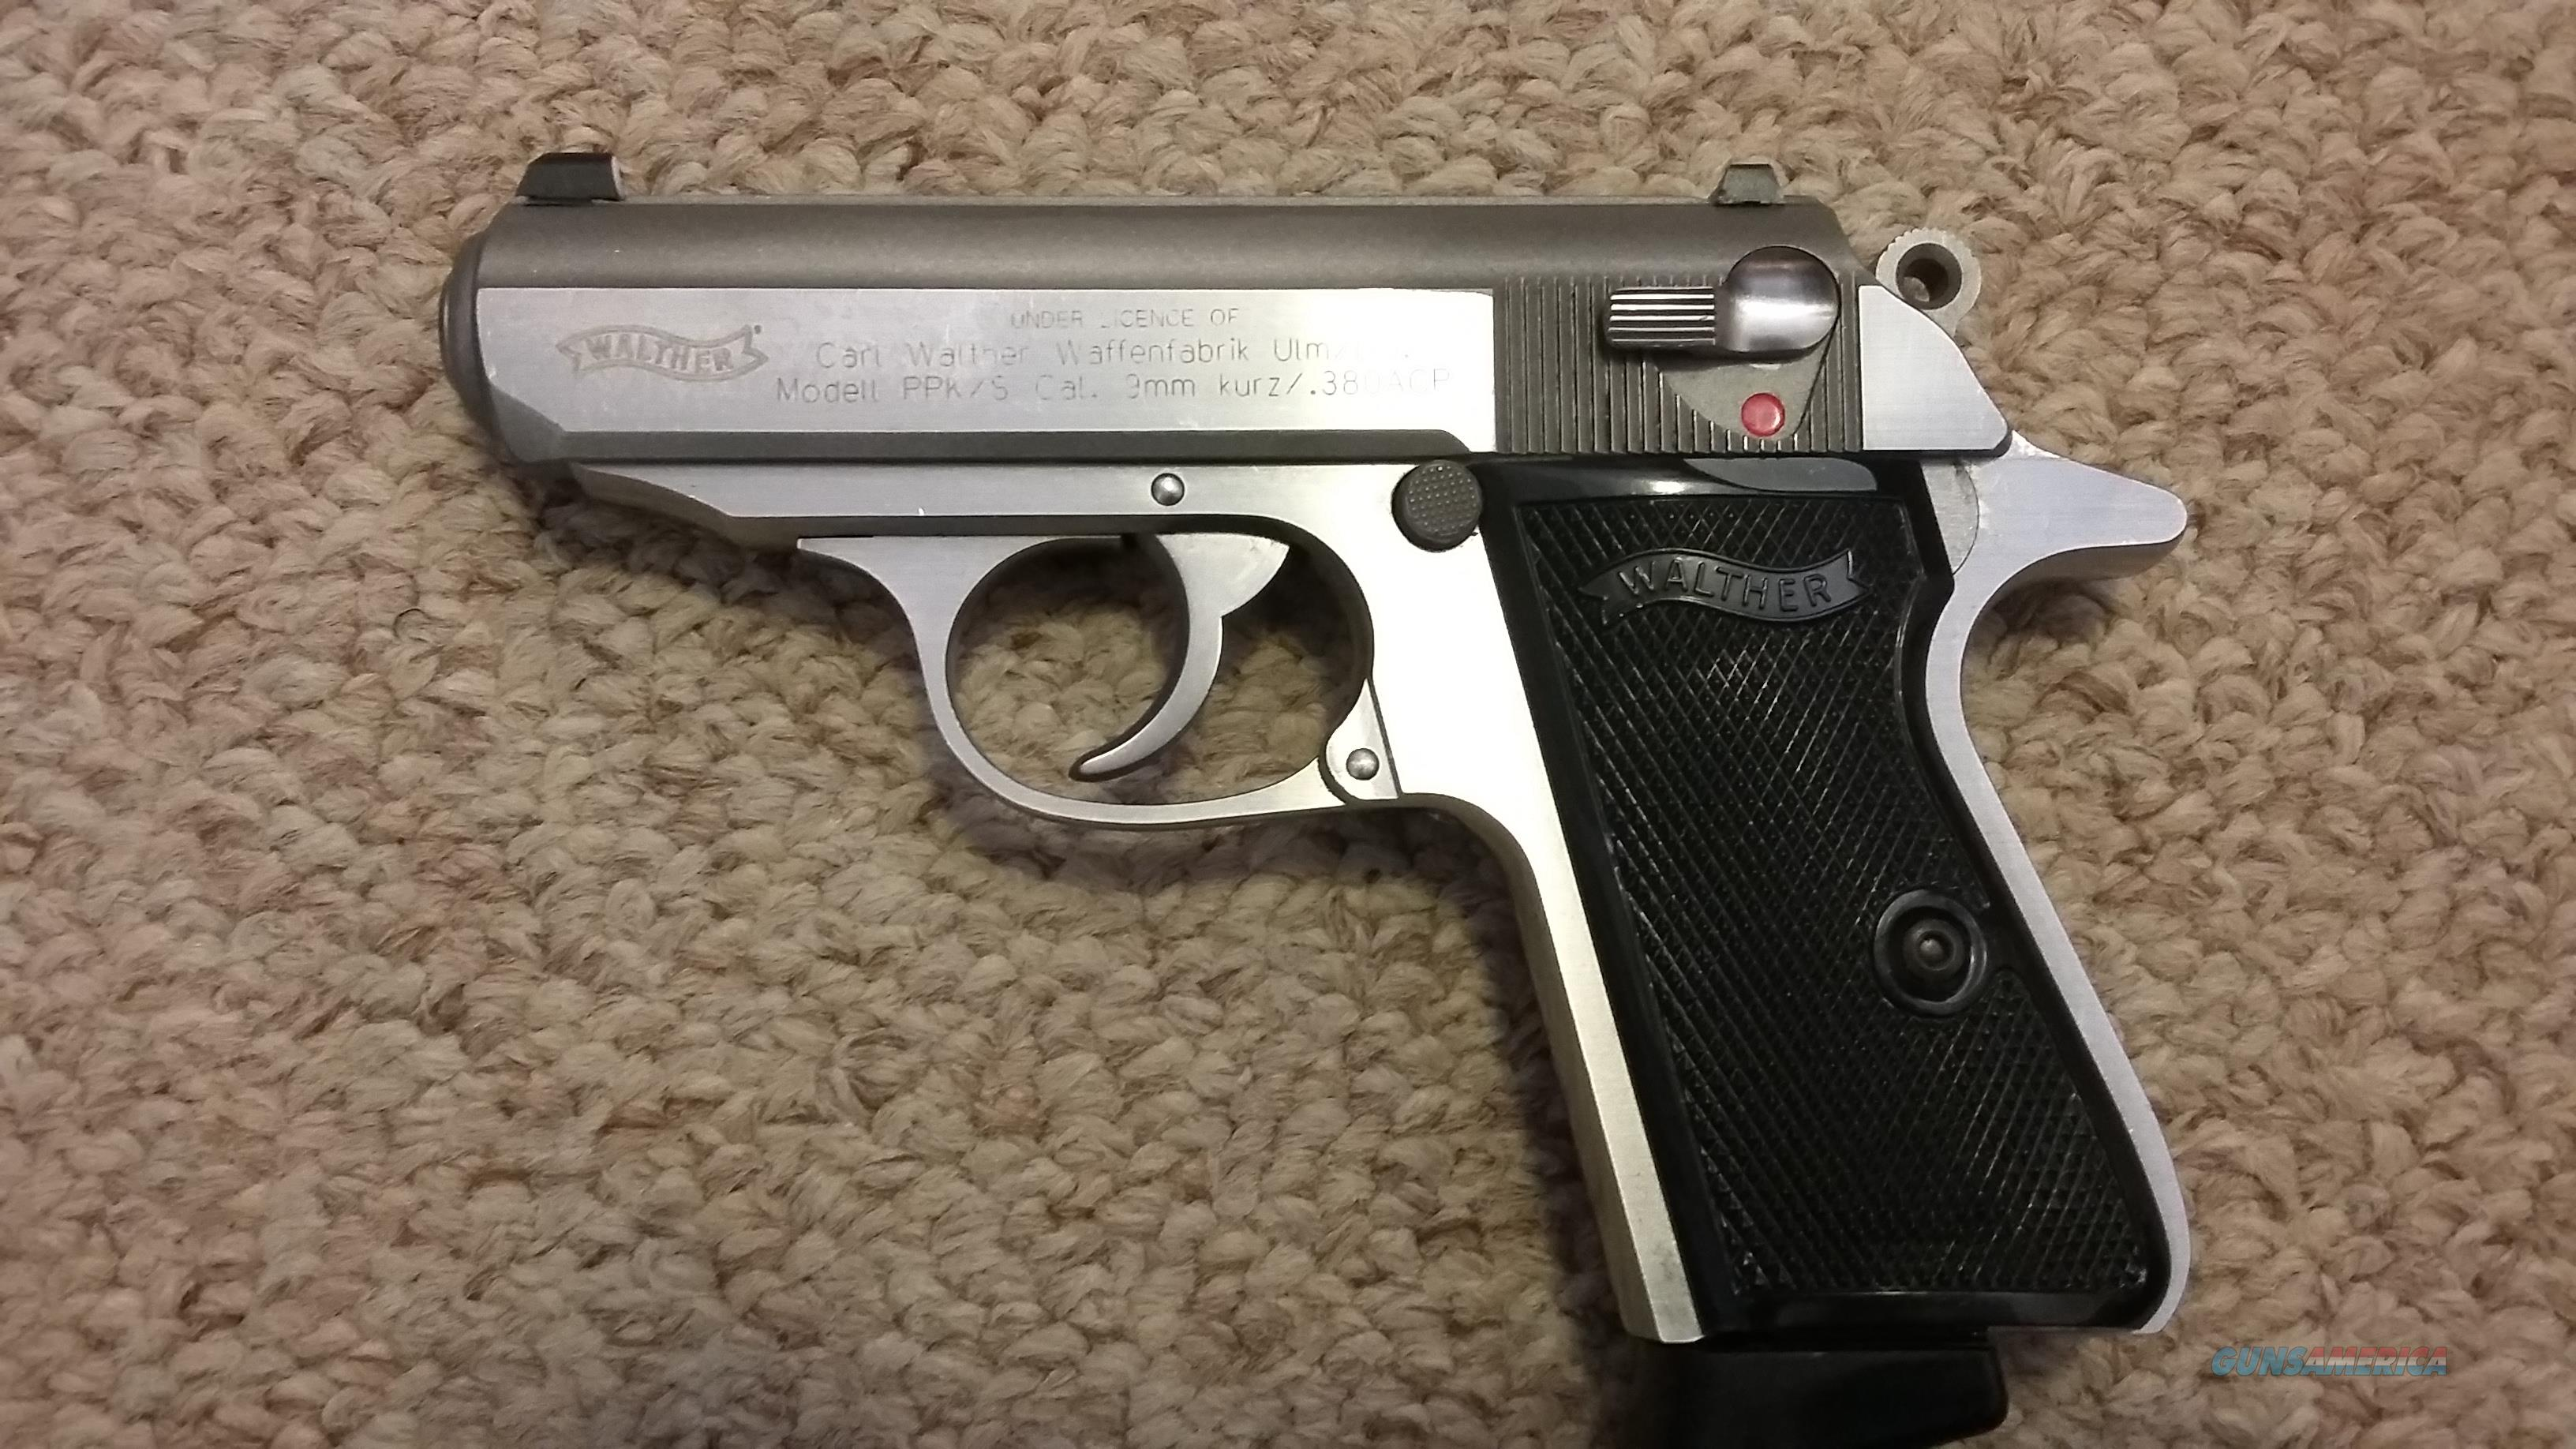 Walther PPKs. 380 with extras  Guns > Pistols > Walther Pistols > Post WWII > PPK Series